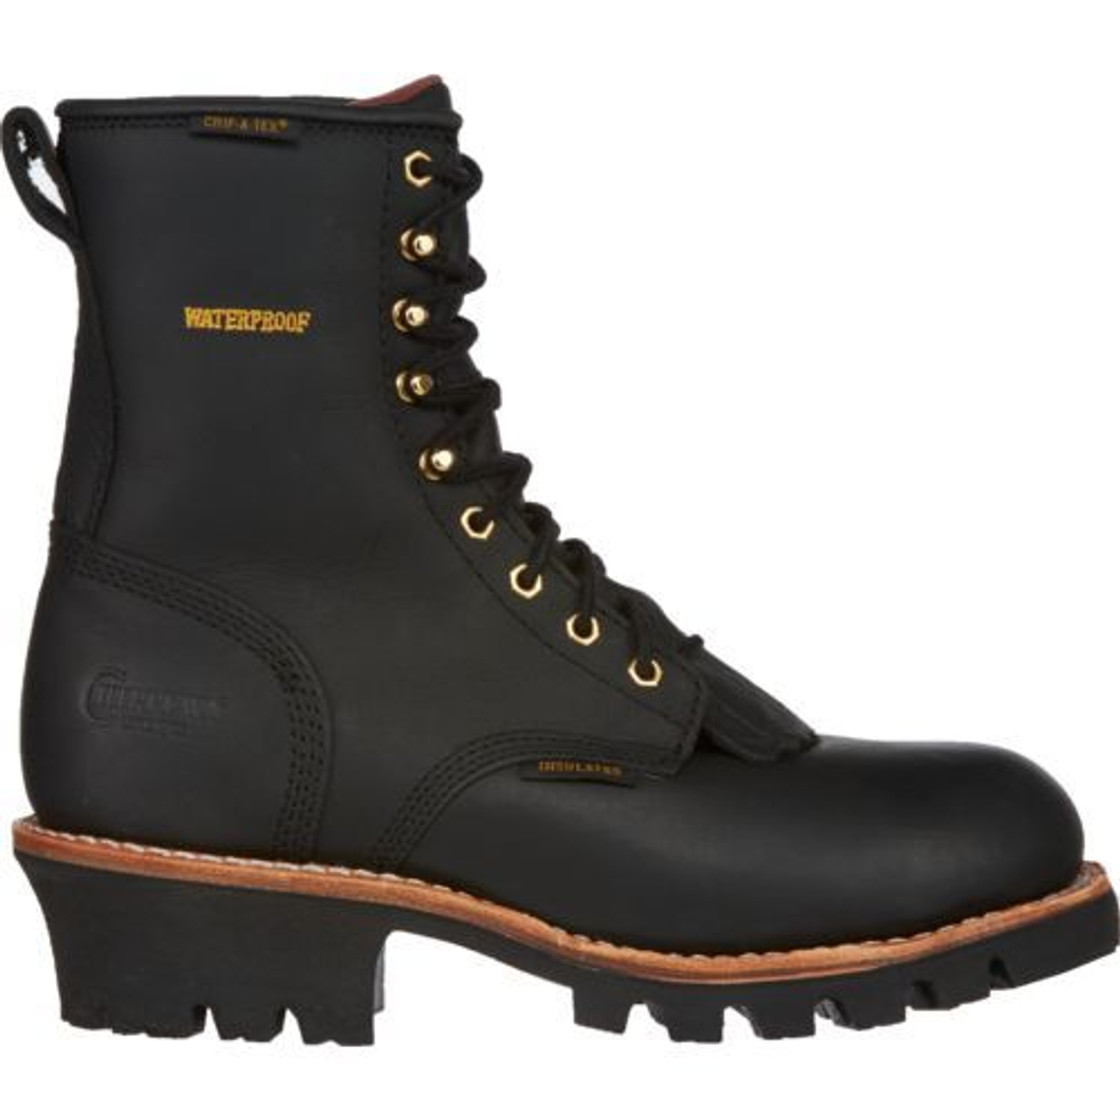 Mens Chippewa Boots